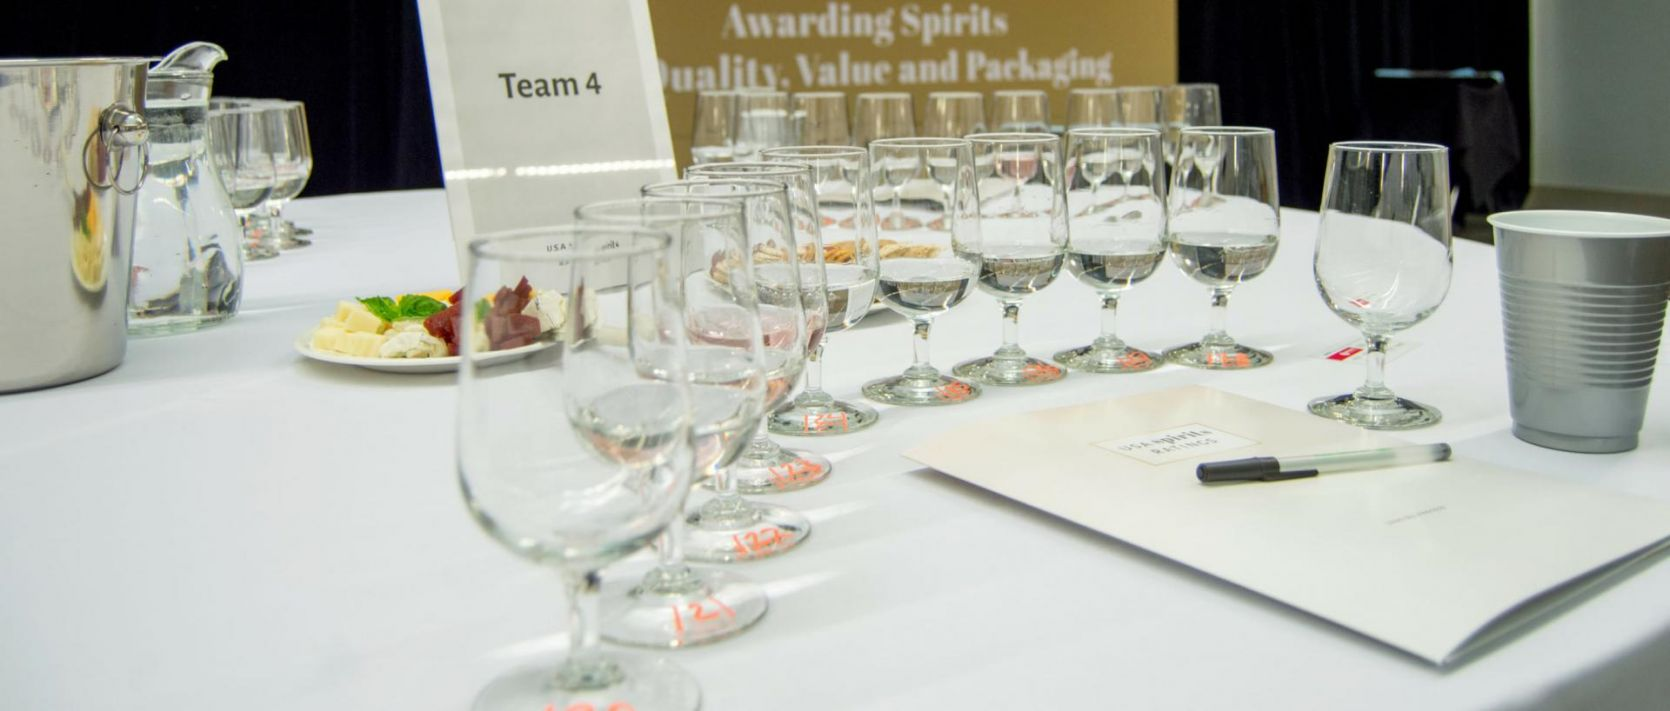 Photo for: 2019 USA Spirits Ratings Registration is Now Closed.